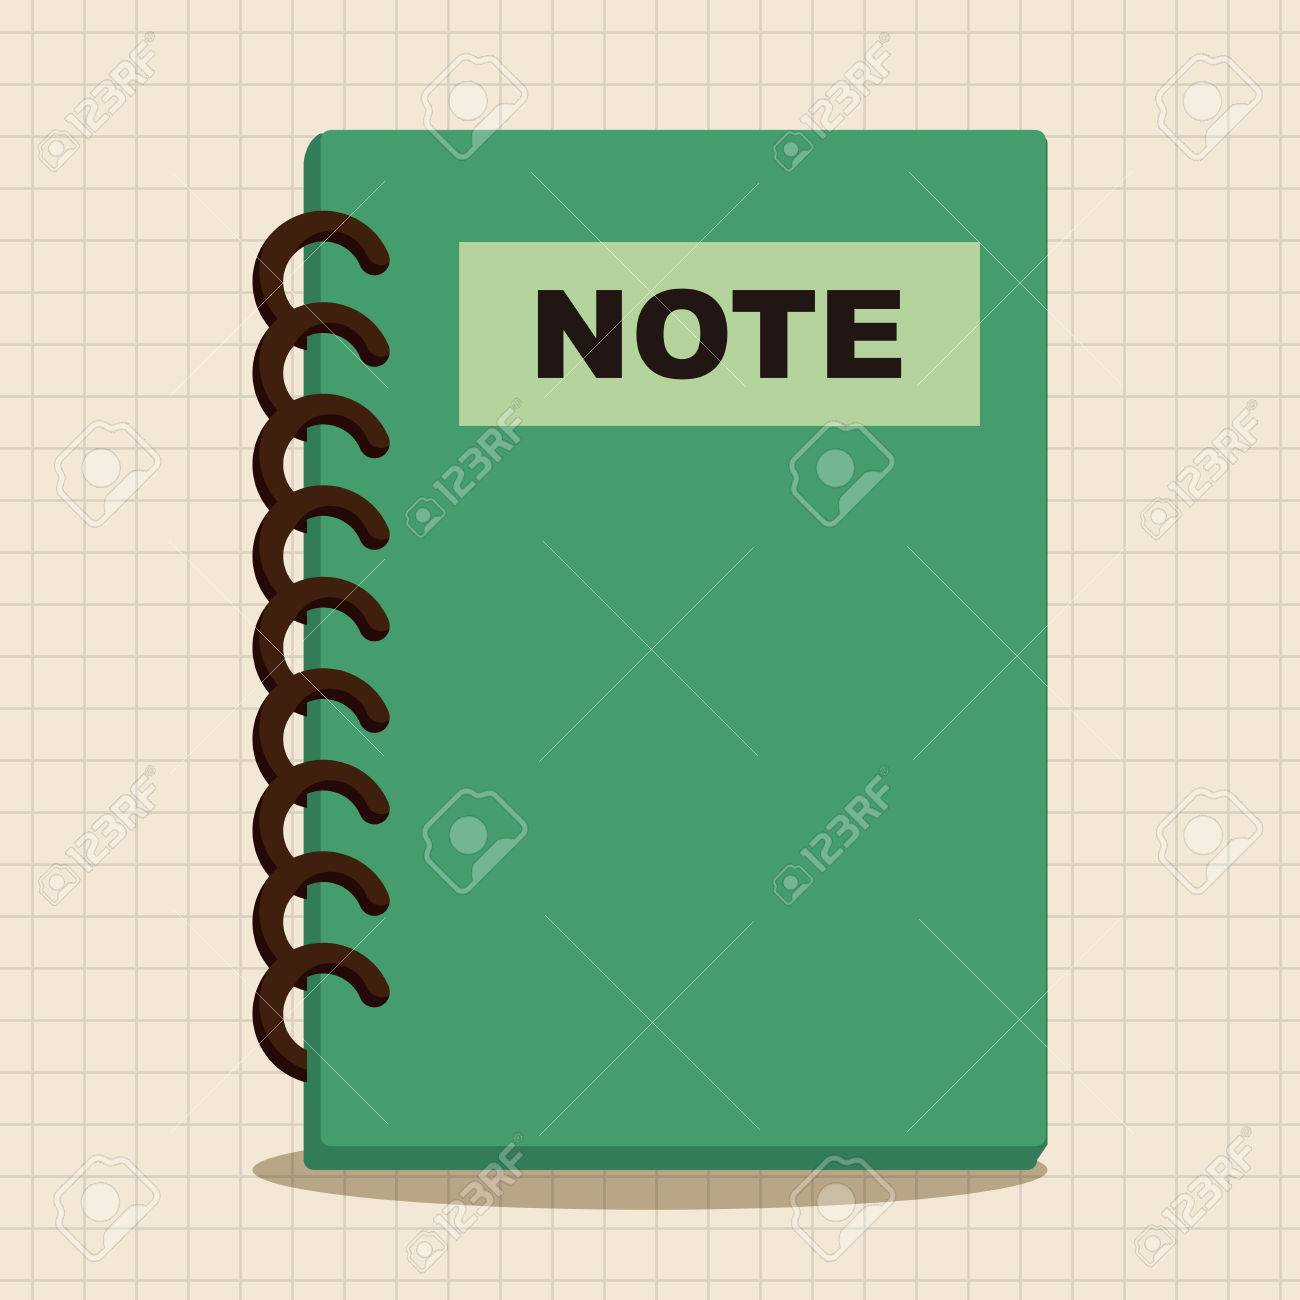 notebook theme elements royalty free cliparts vectors and stock